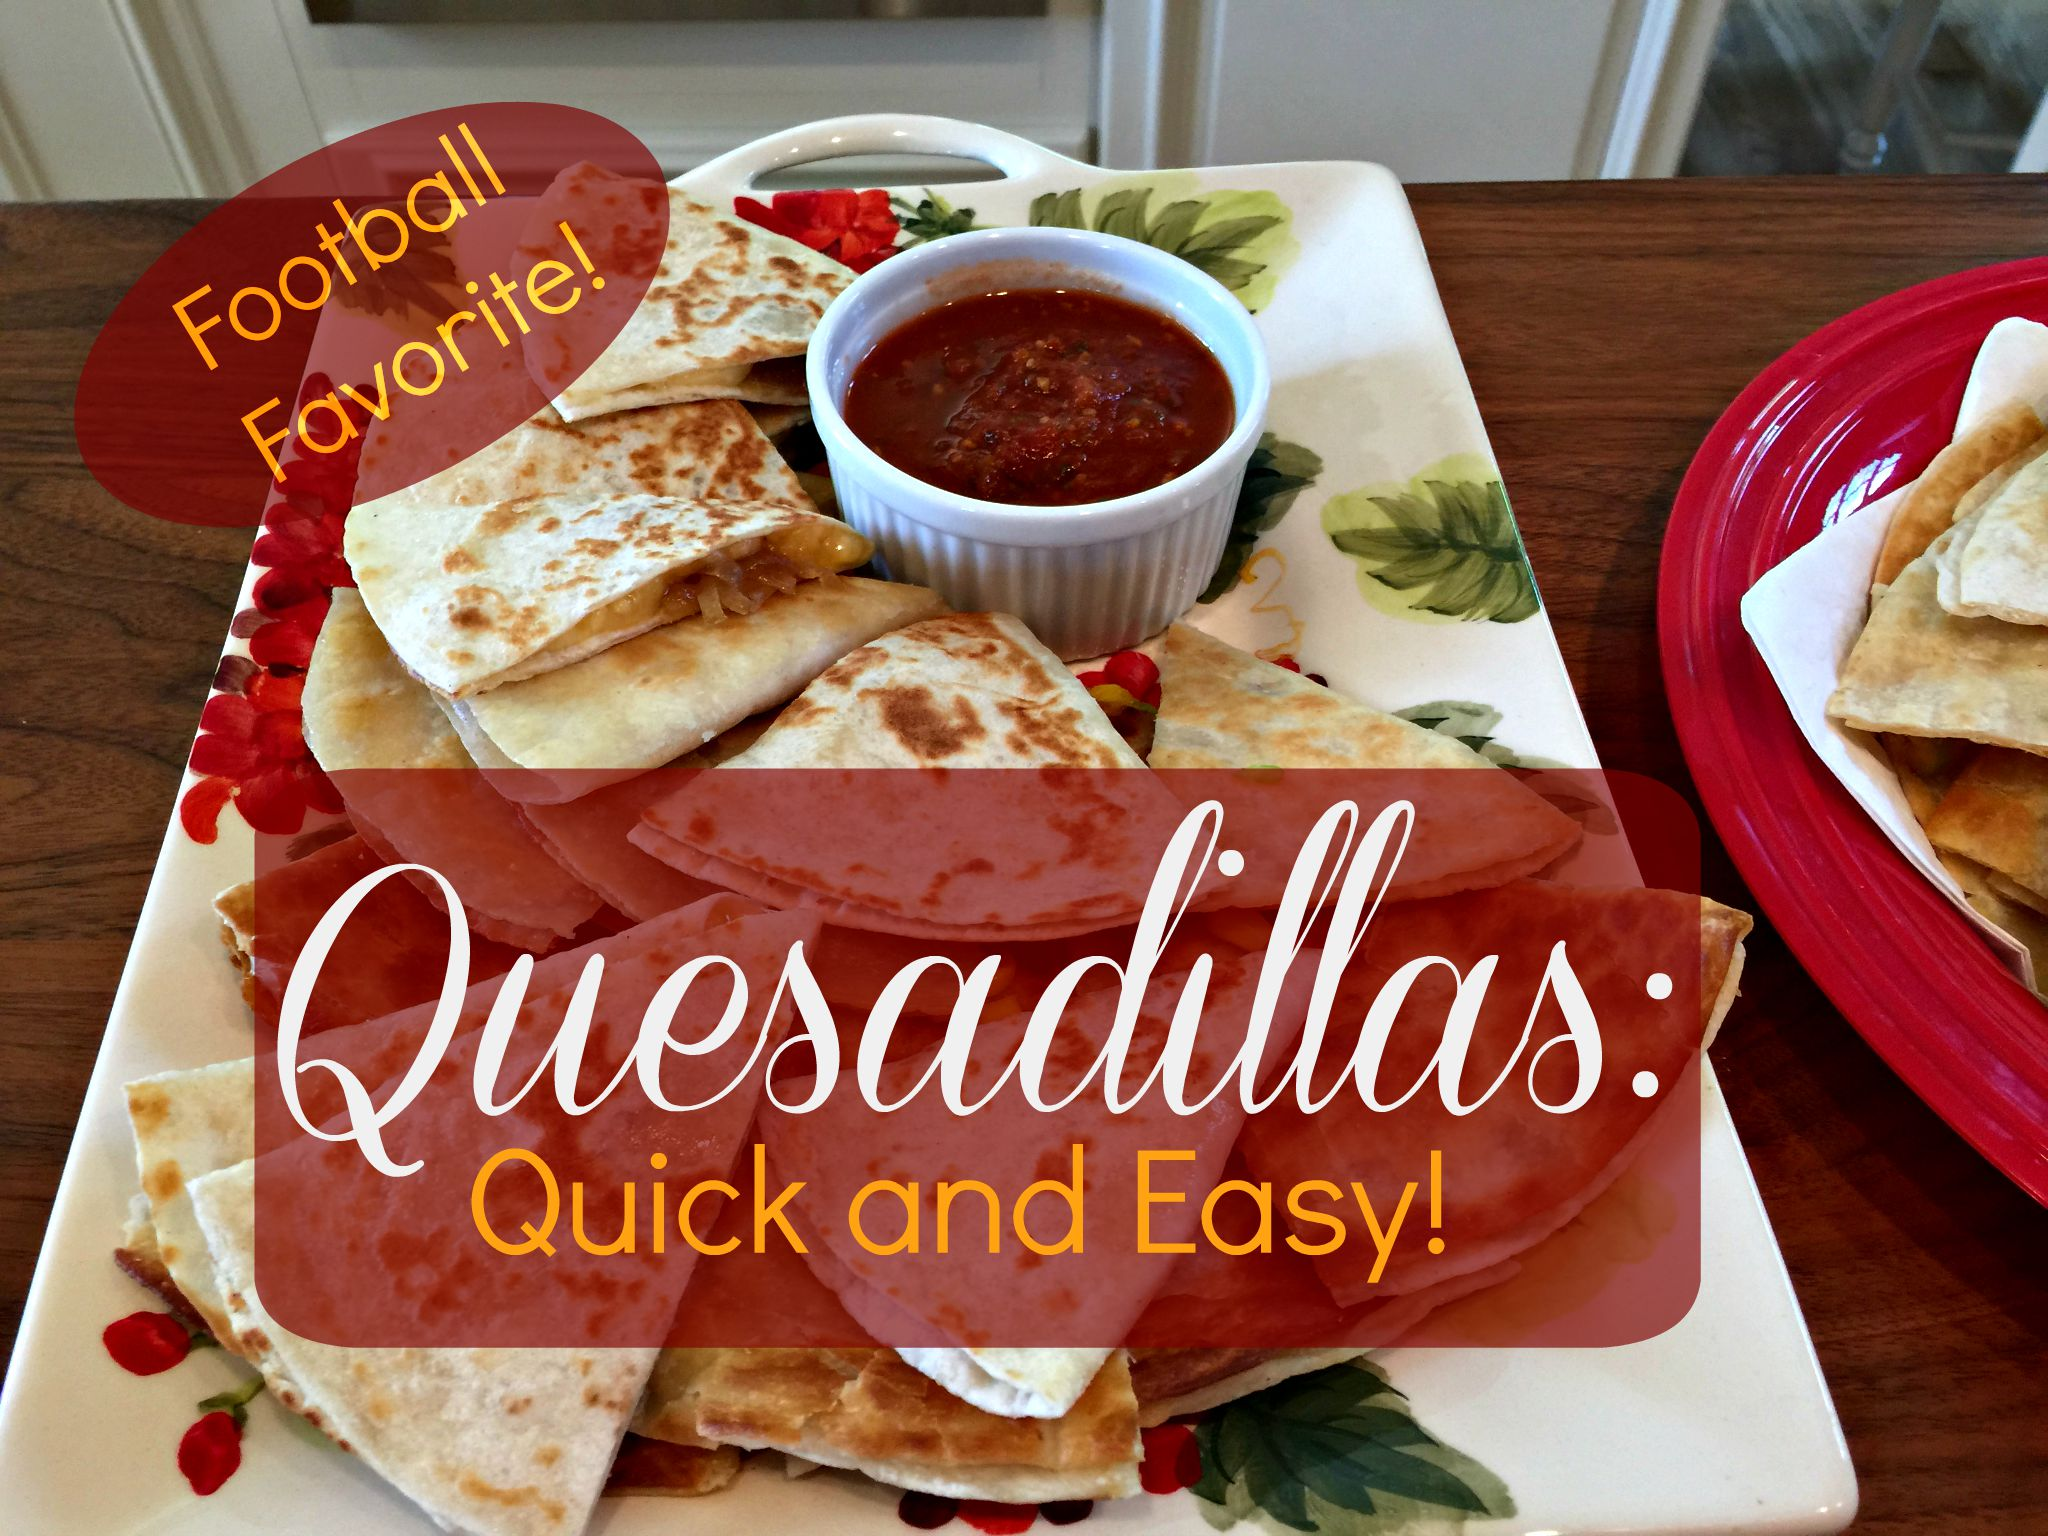 Football Food: Quick and Easy Corn, Green Chile, and Cheddar Quesadillas